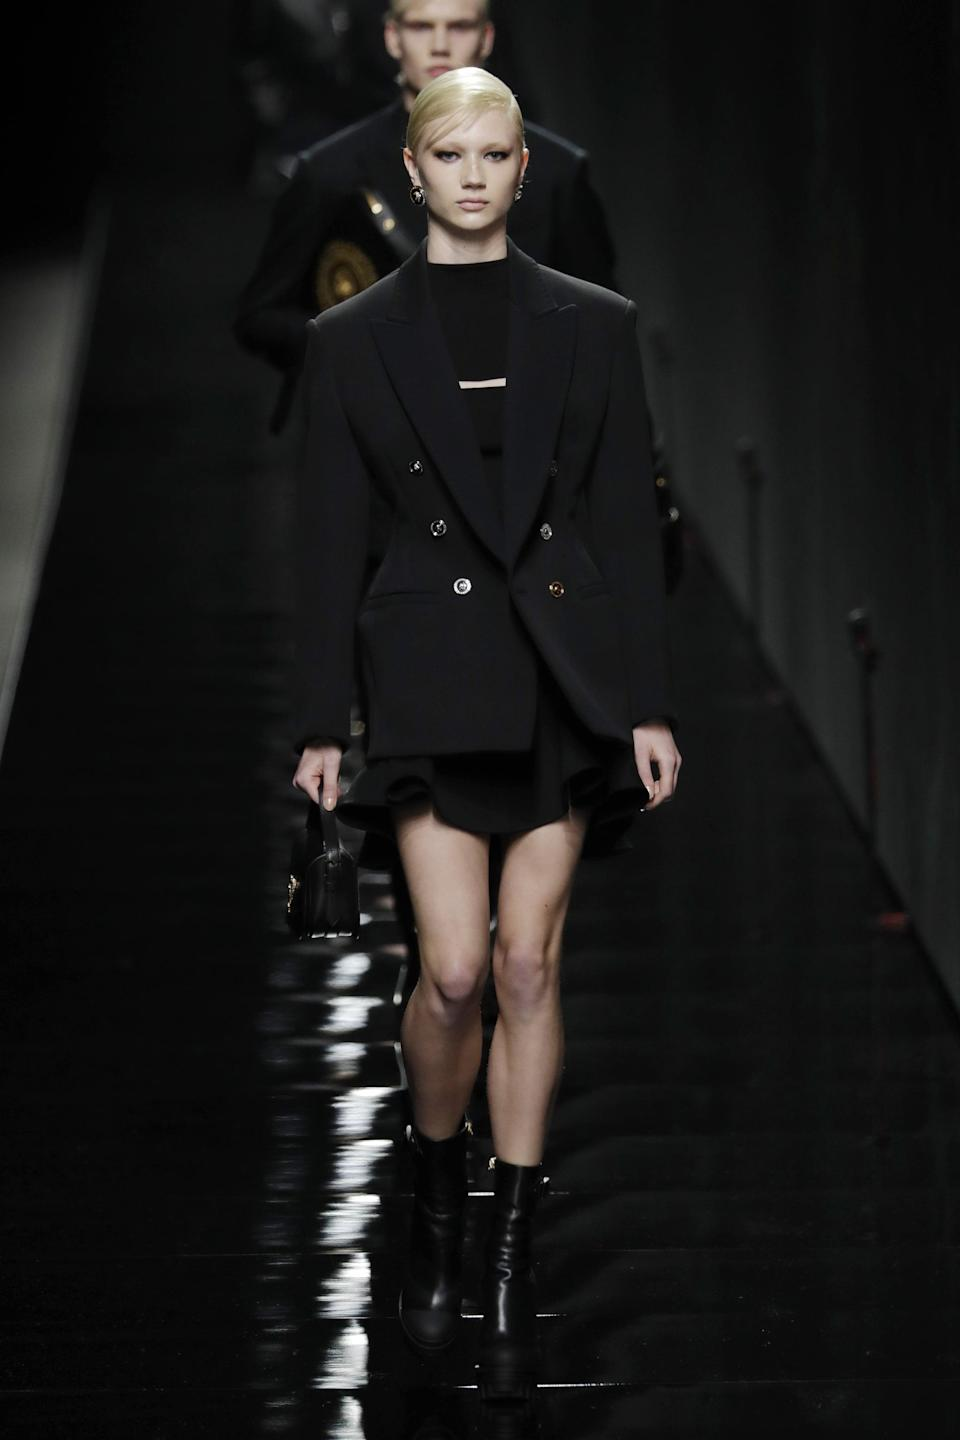 <p>Versace is a brand that's fit for many moods. From its iconic Barocco print to the J Lo-famous jungle print, it's always interesting to see what Donatella has up her sleeve. But the most Versace of all Versace? Head-to-toe black with gold accents. This may be the easiest Fashion Week look to nail yet.</p>